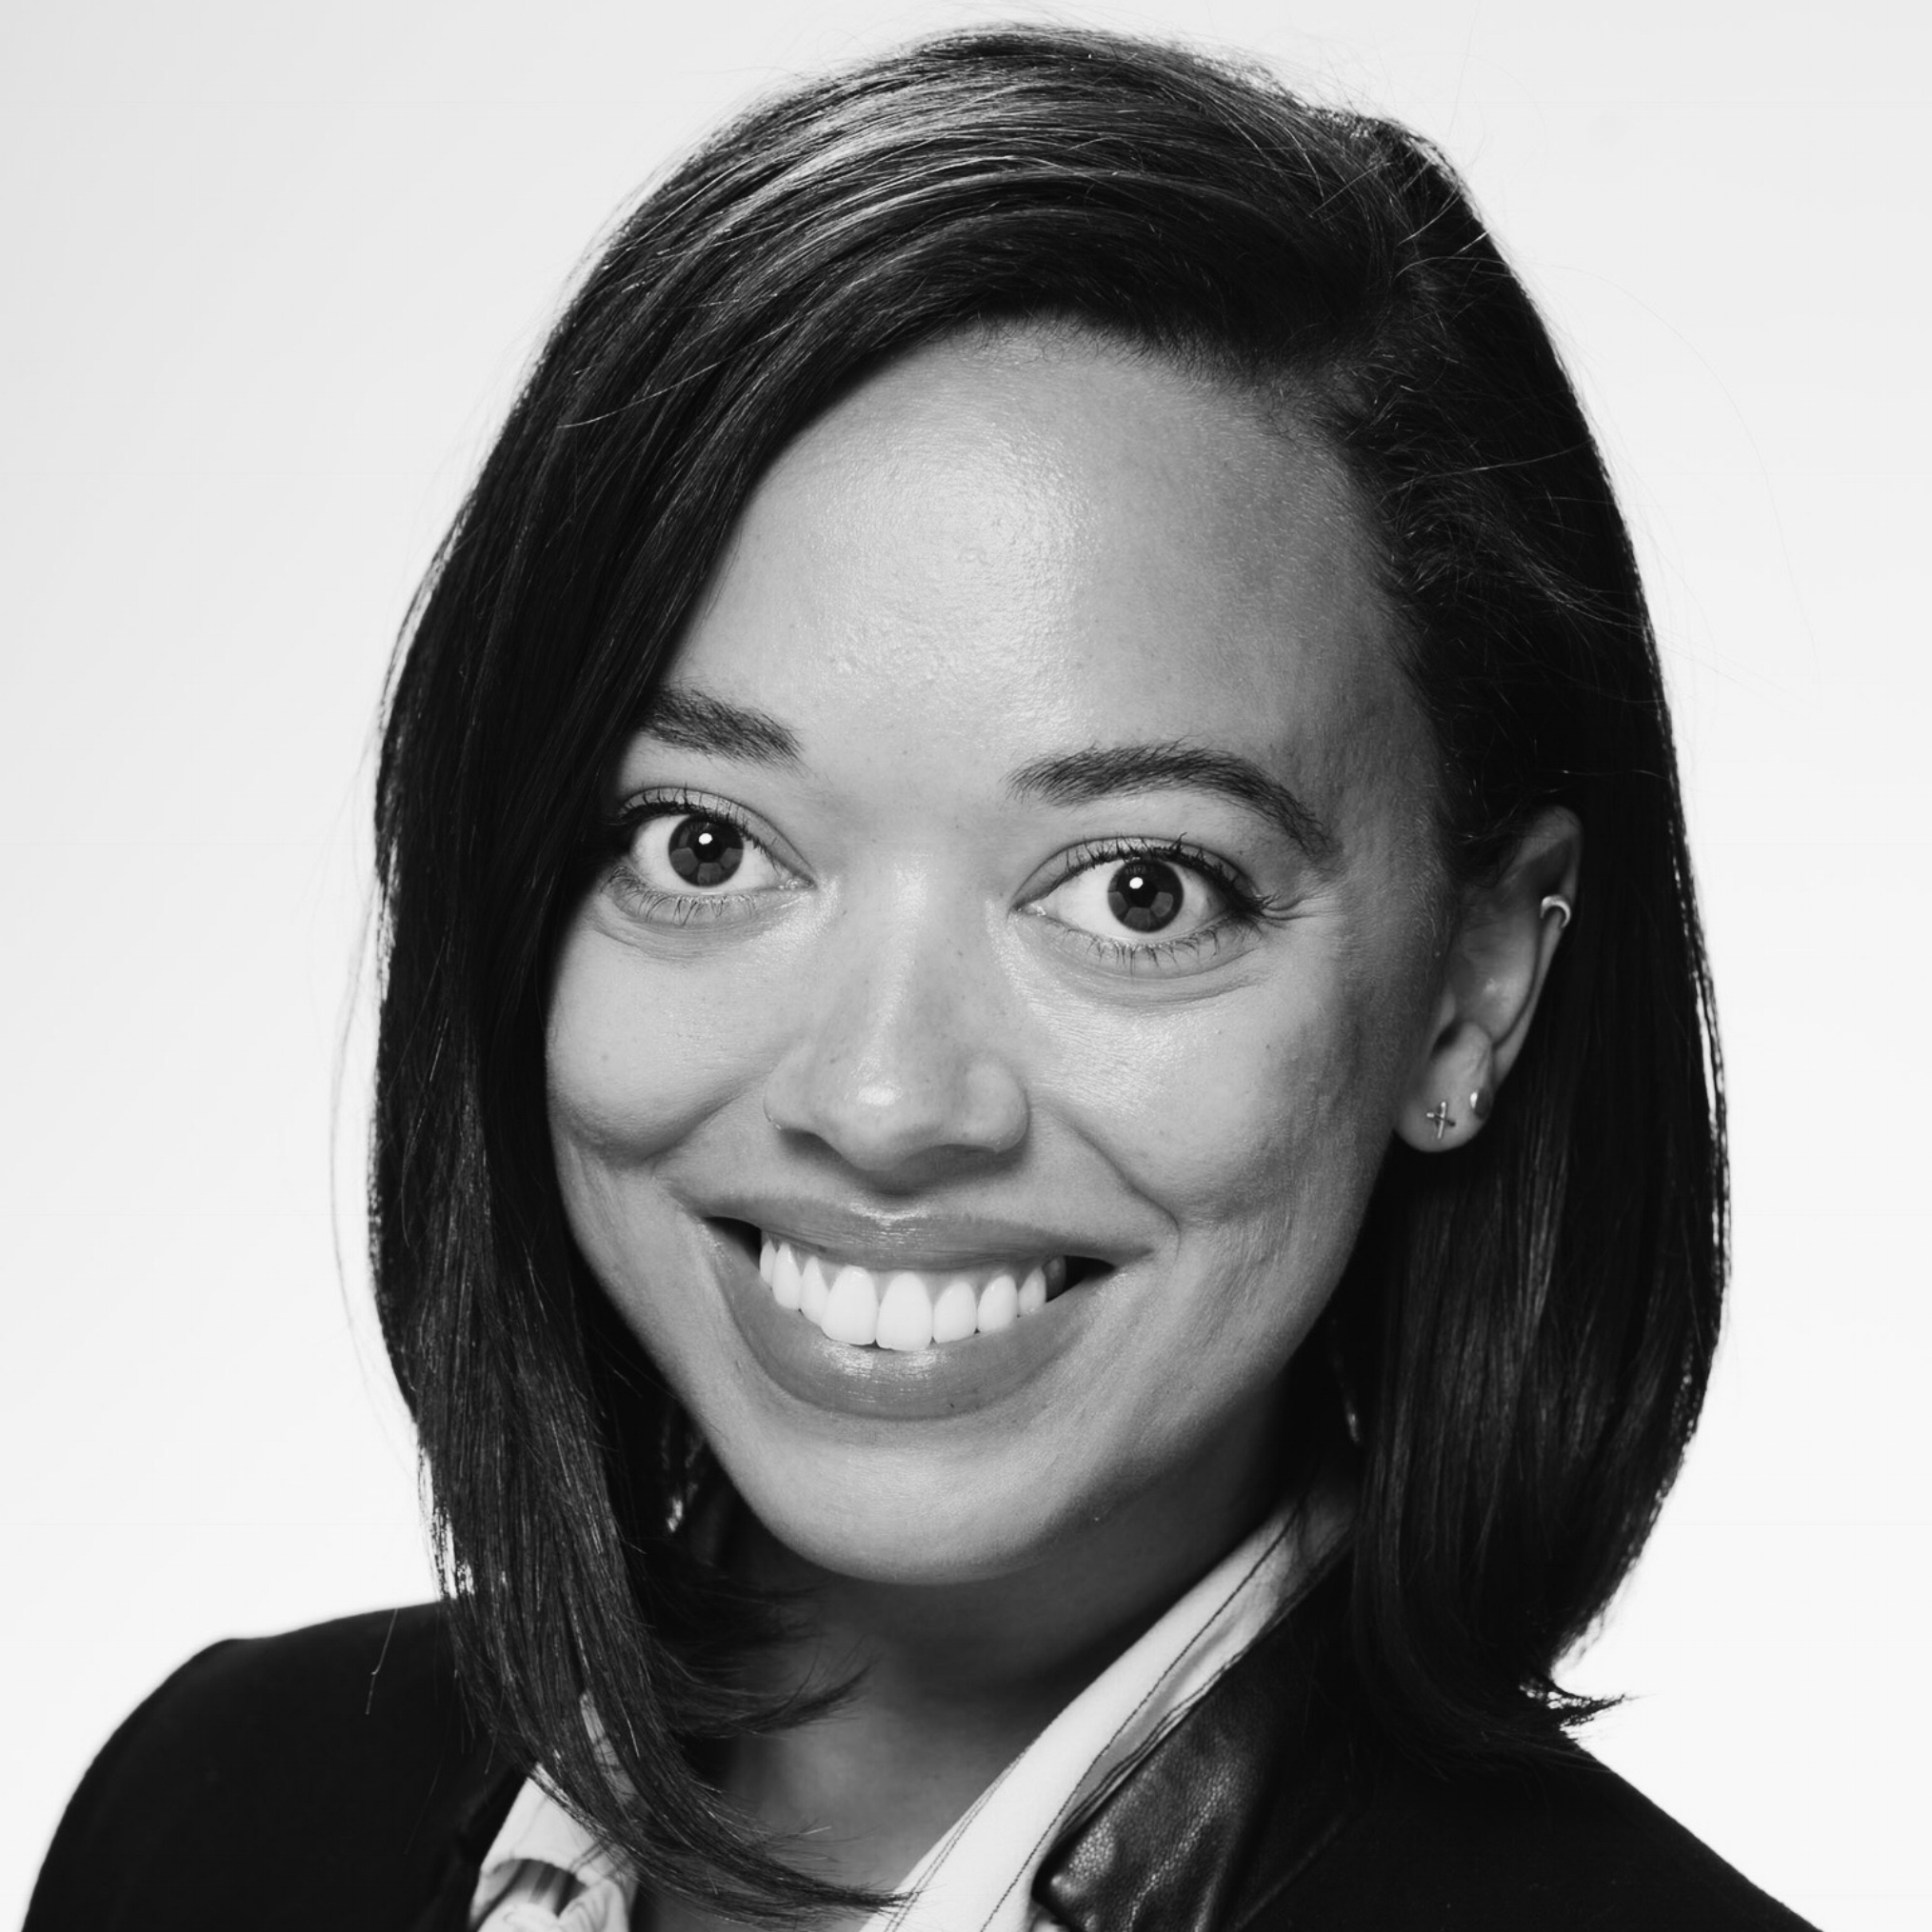 Clare Quinlan, Business Advisor   Clare is a passionate strategist dedicated to empowering women and people of color to build capital and do what they love. After receiving a BA from Williams College, she spent several years managing donor portfolios and fundraising campaigns for contemporary art institutions in New York, including Dia Art Foundation and The New Museum. She has worked on e-commerce strategy for E&J Gallo Winery and received a MBA from the University of Chicago Booth School of Business.